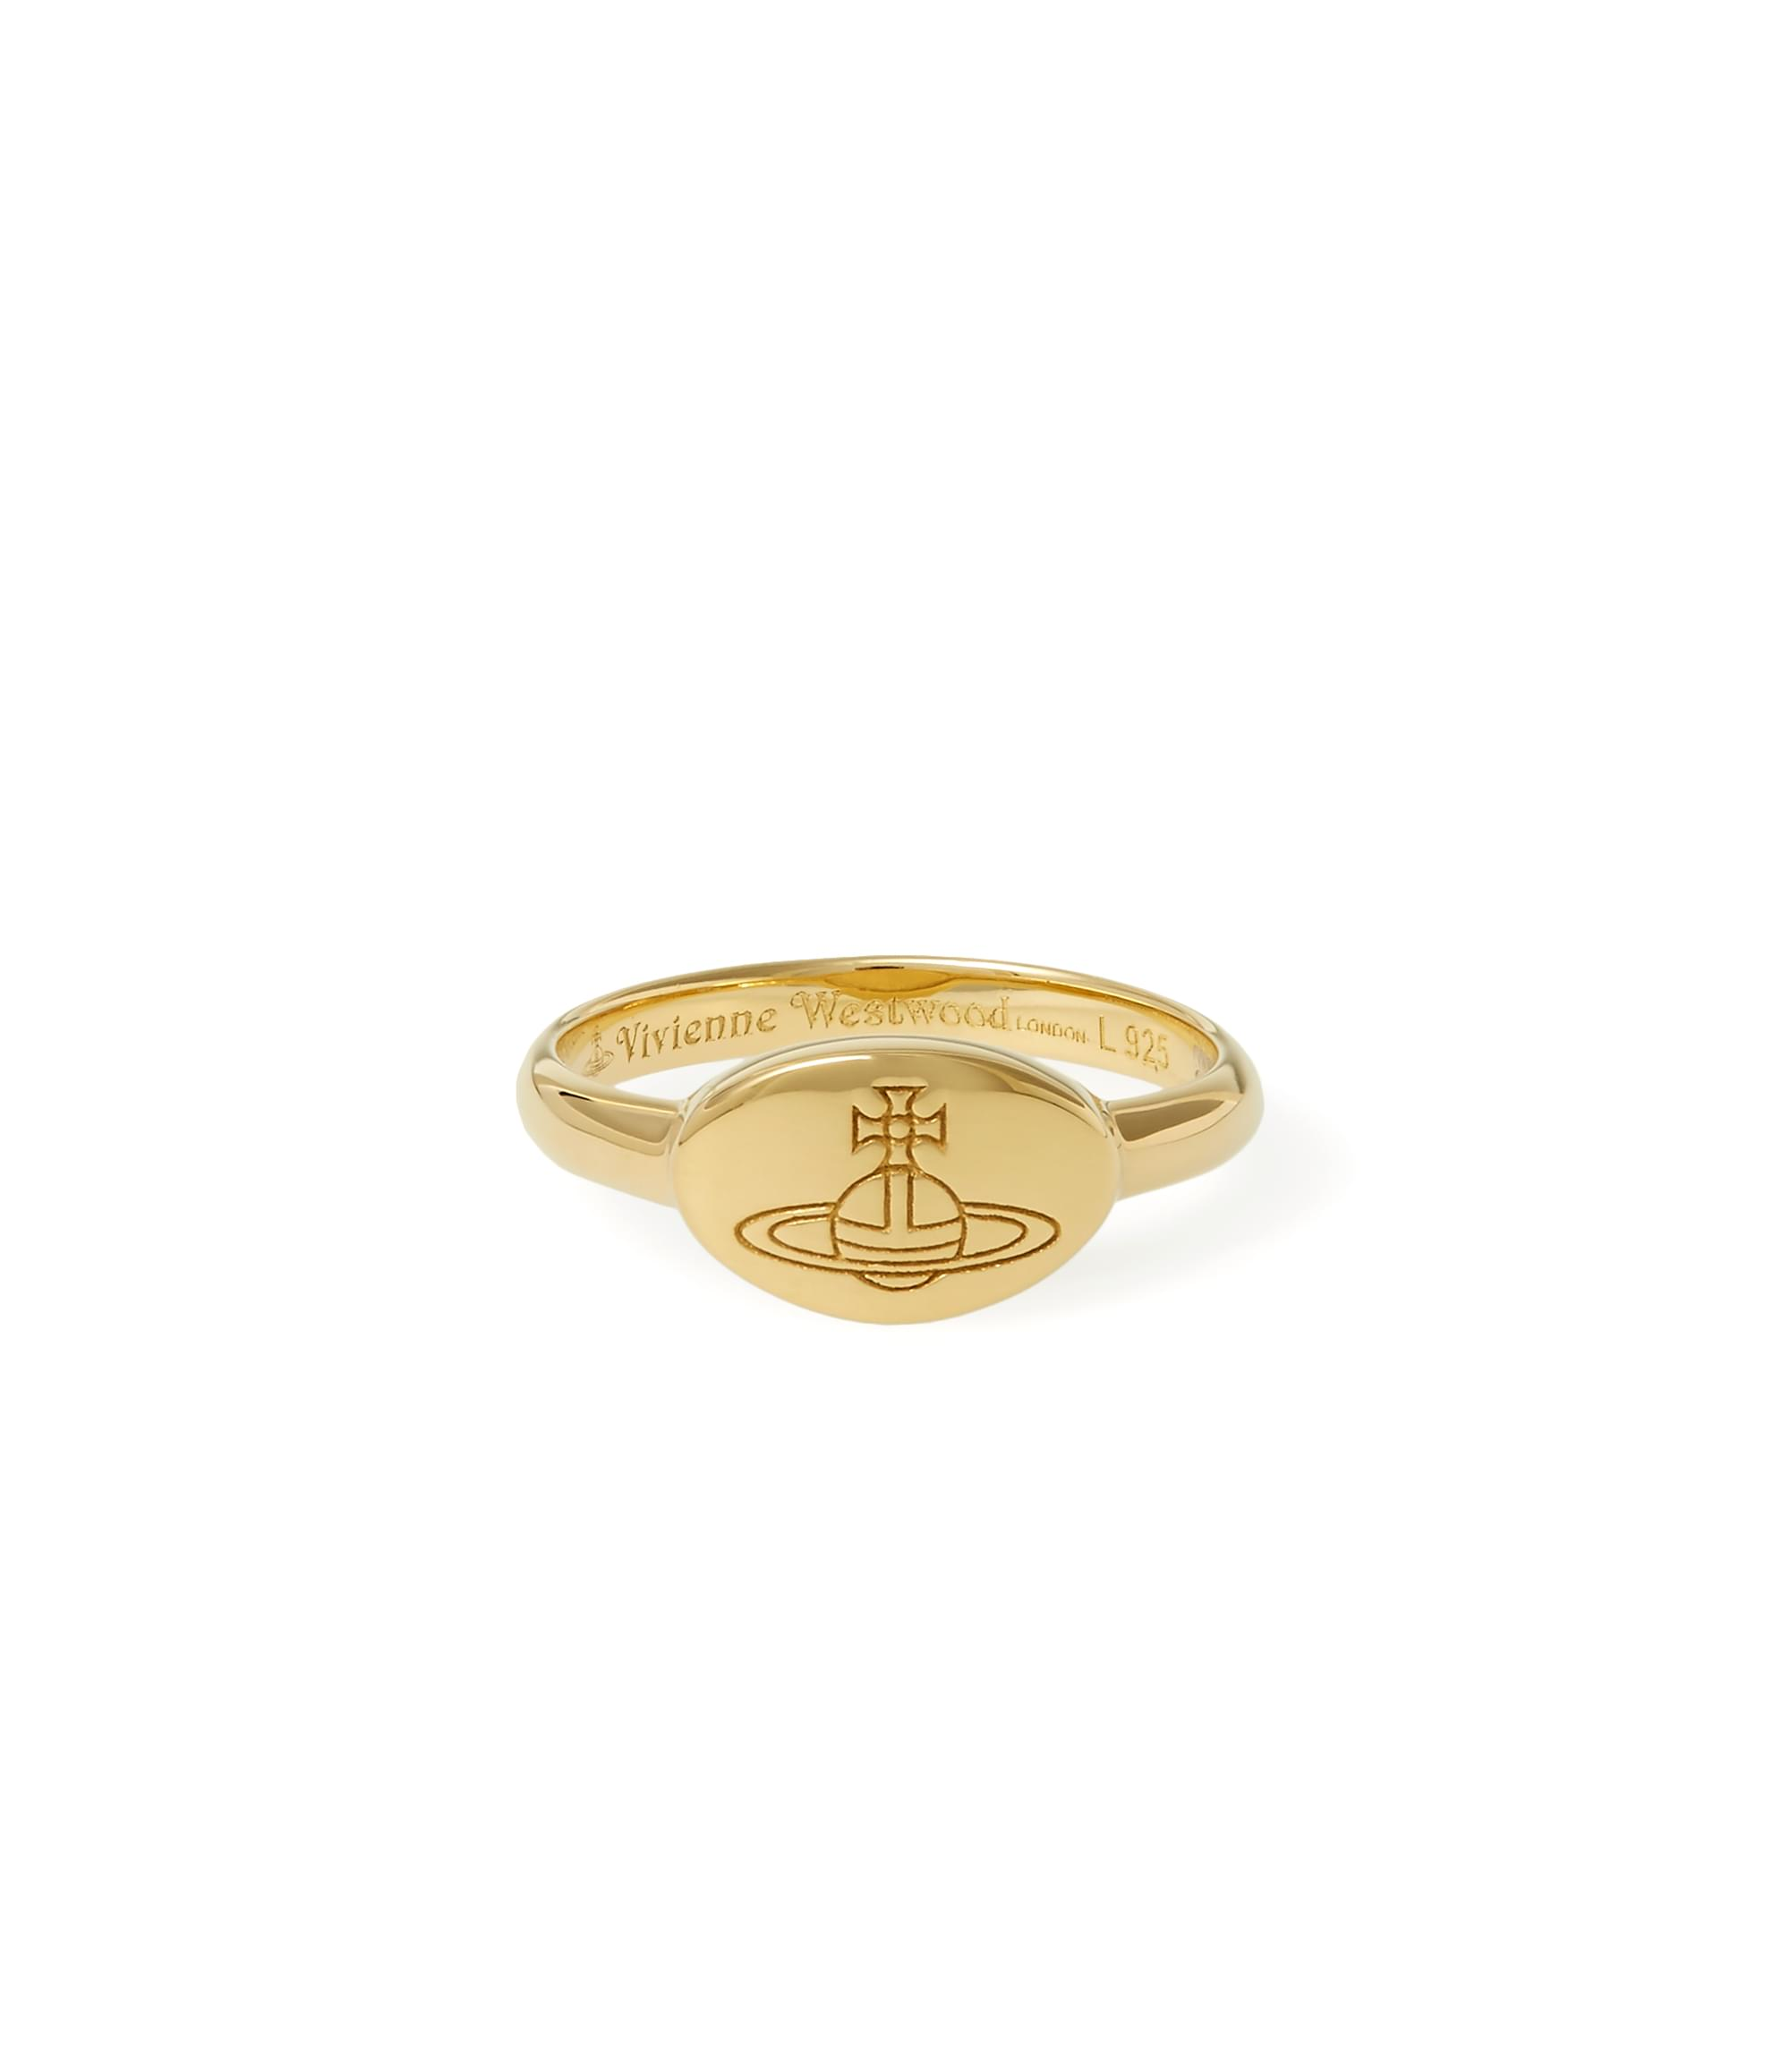 Vivienne Westwood Tilly Ring Yellow Gold